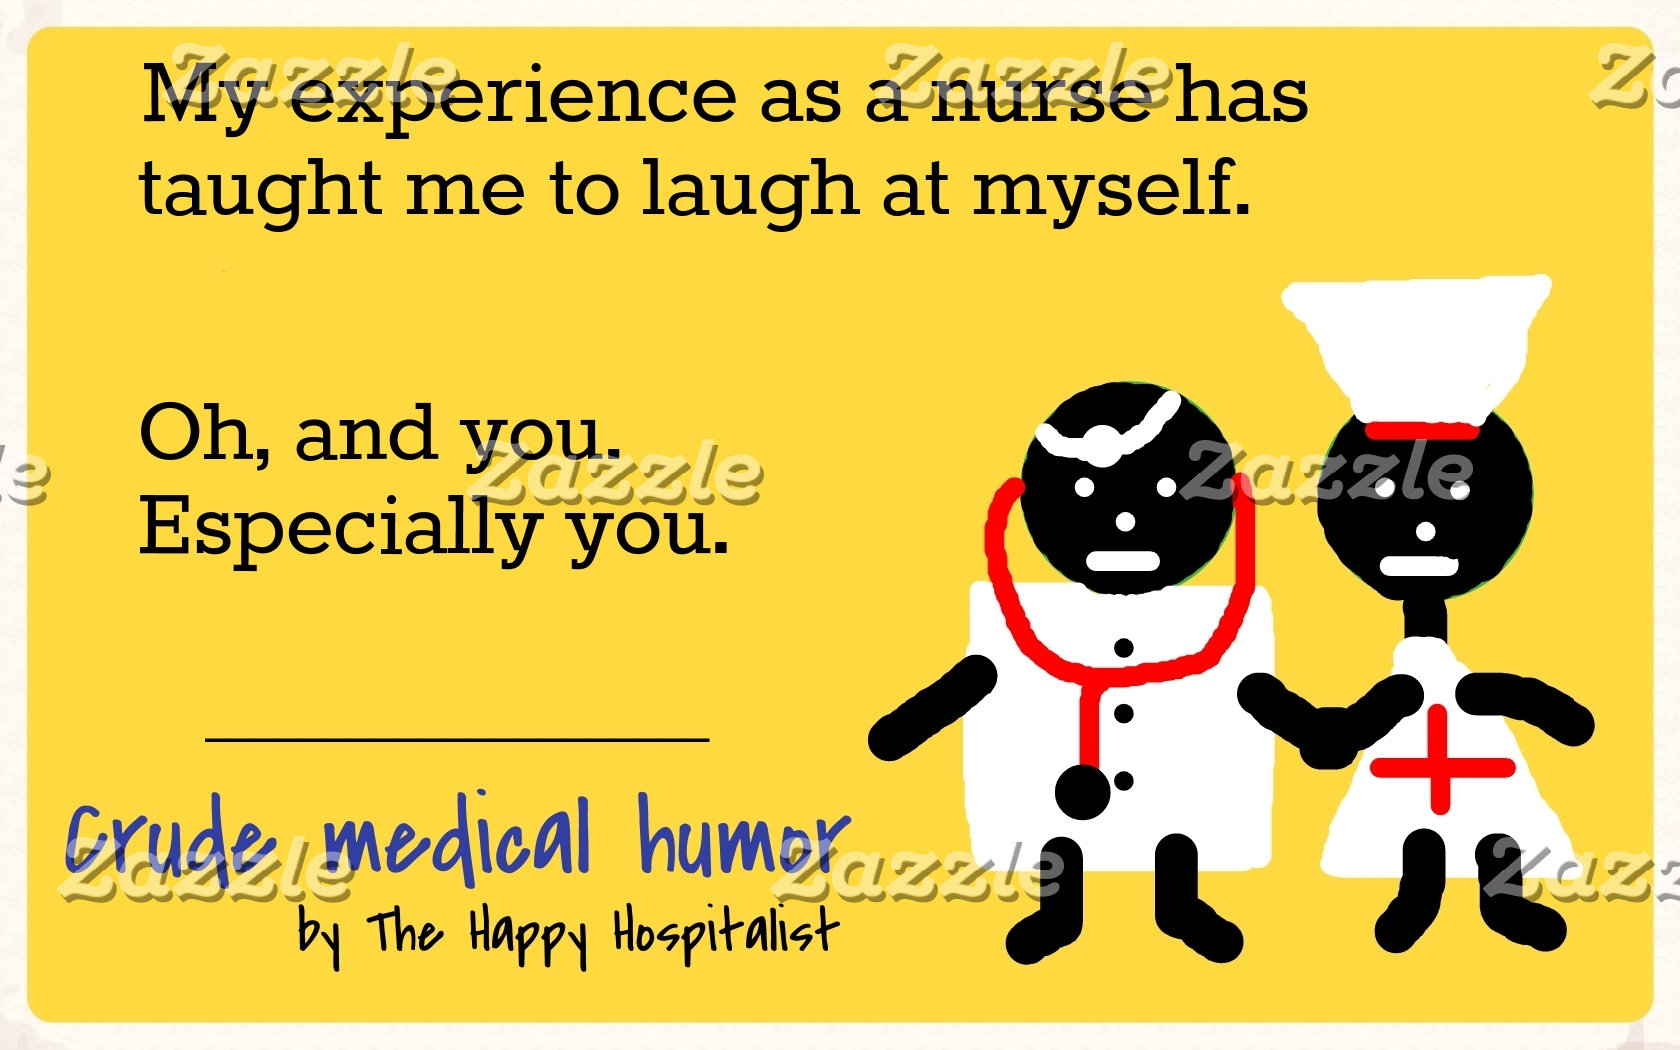 My experience as a nurse has taught me to laugh...